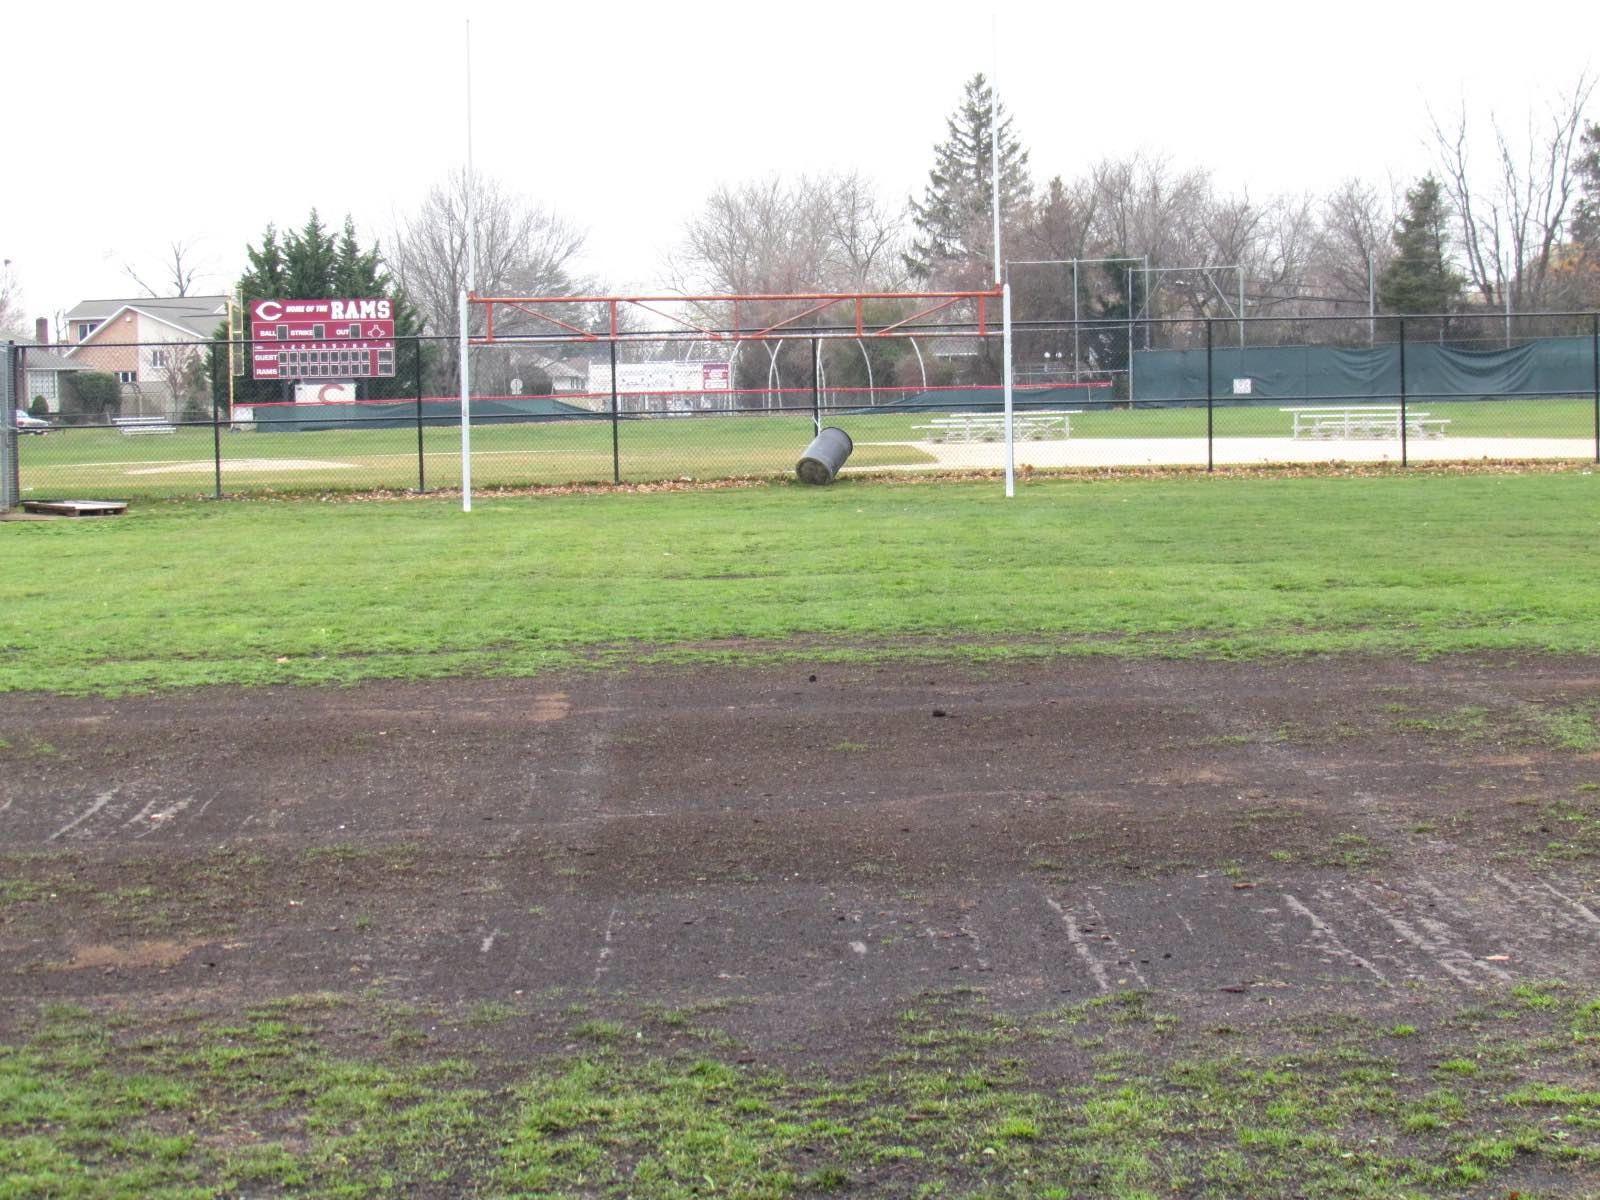 If the bond is approved, fields worn from overuse will be restored as multi-use natural grass fields at East Meadow and W.T. Clarke High Schools.